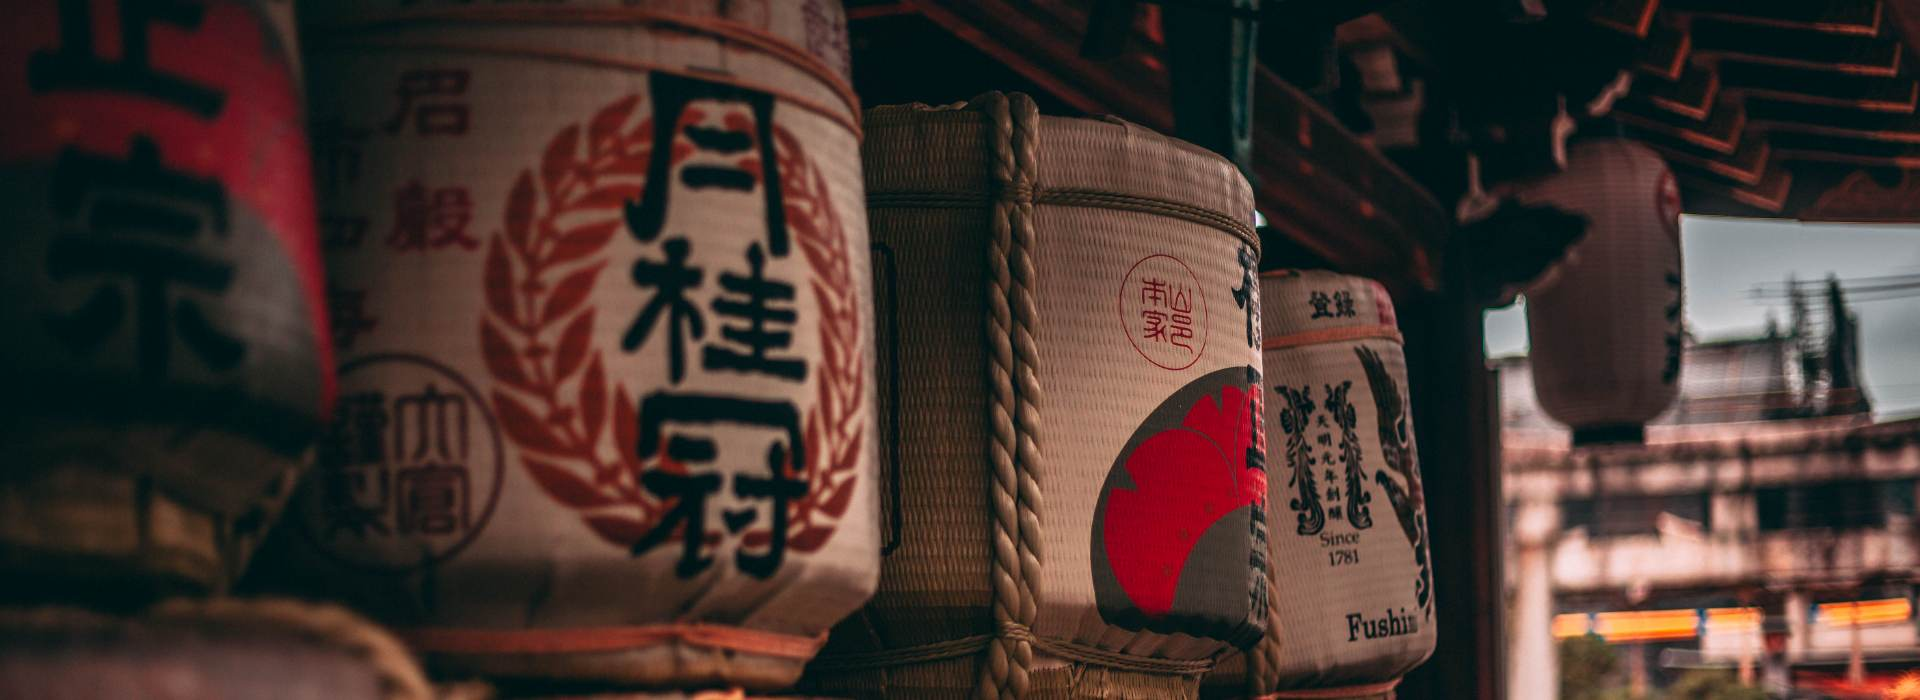 video screenshot for Discover what Kyoto sake is all about